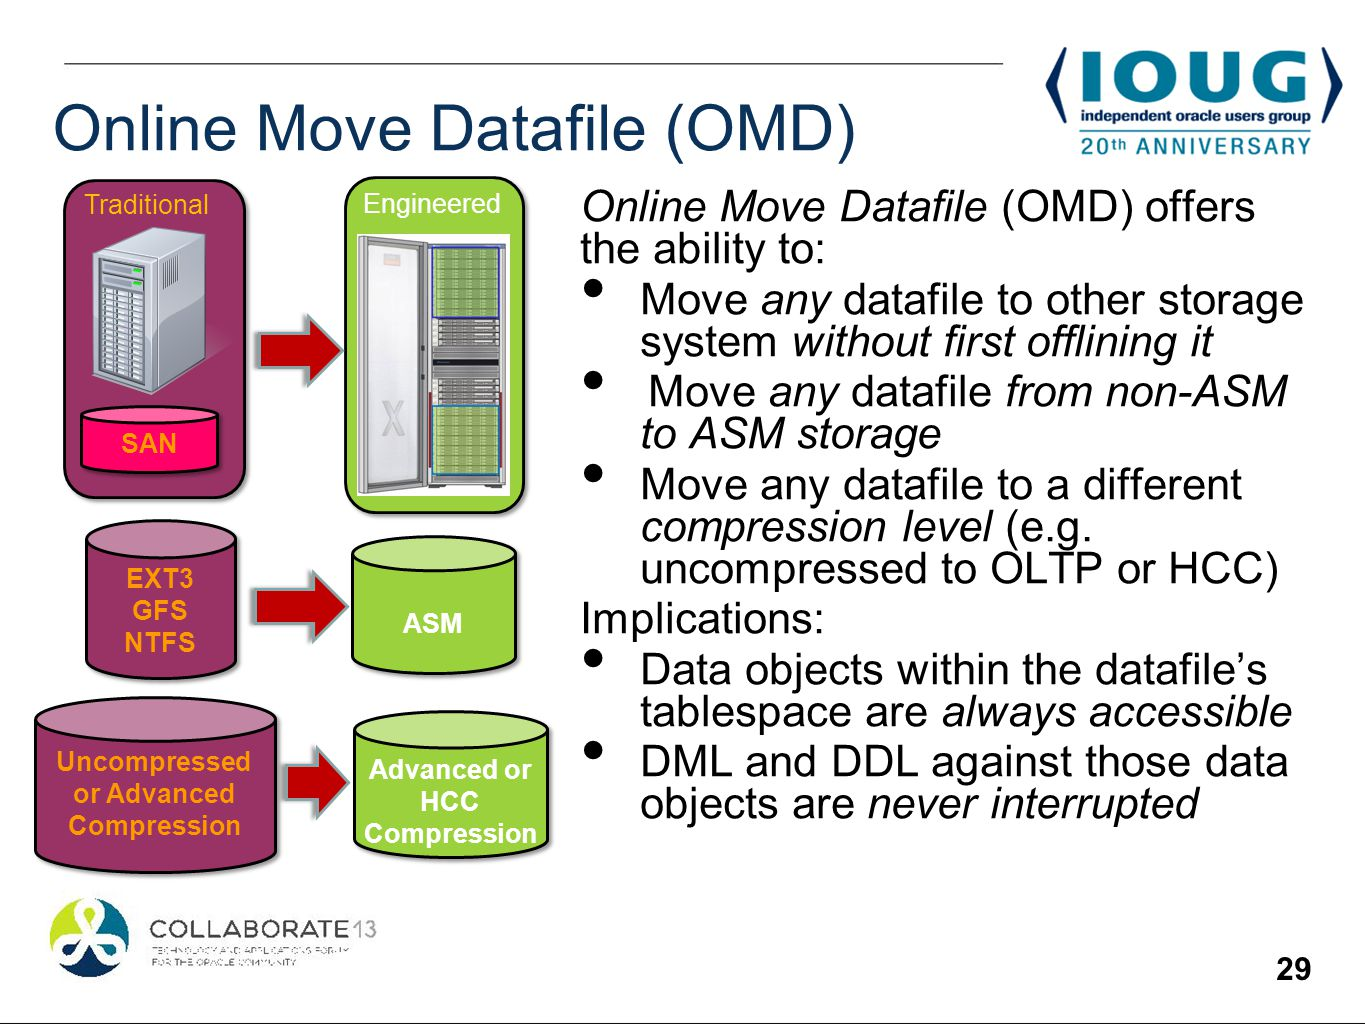 29 Advanced or HCC Compression Online Move Datafile (OMD) Online Move Datafile (OMD) offers the ability to: Move any datafile to other storage system without first offlining it Move any datafile from non-ASM to ASM storage Move any datafile to a different compression level (e.g.